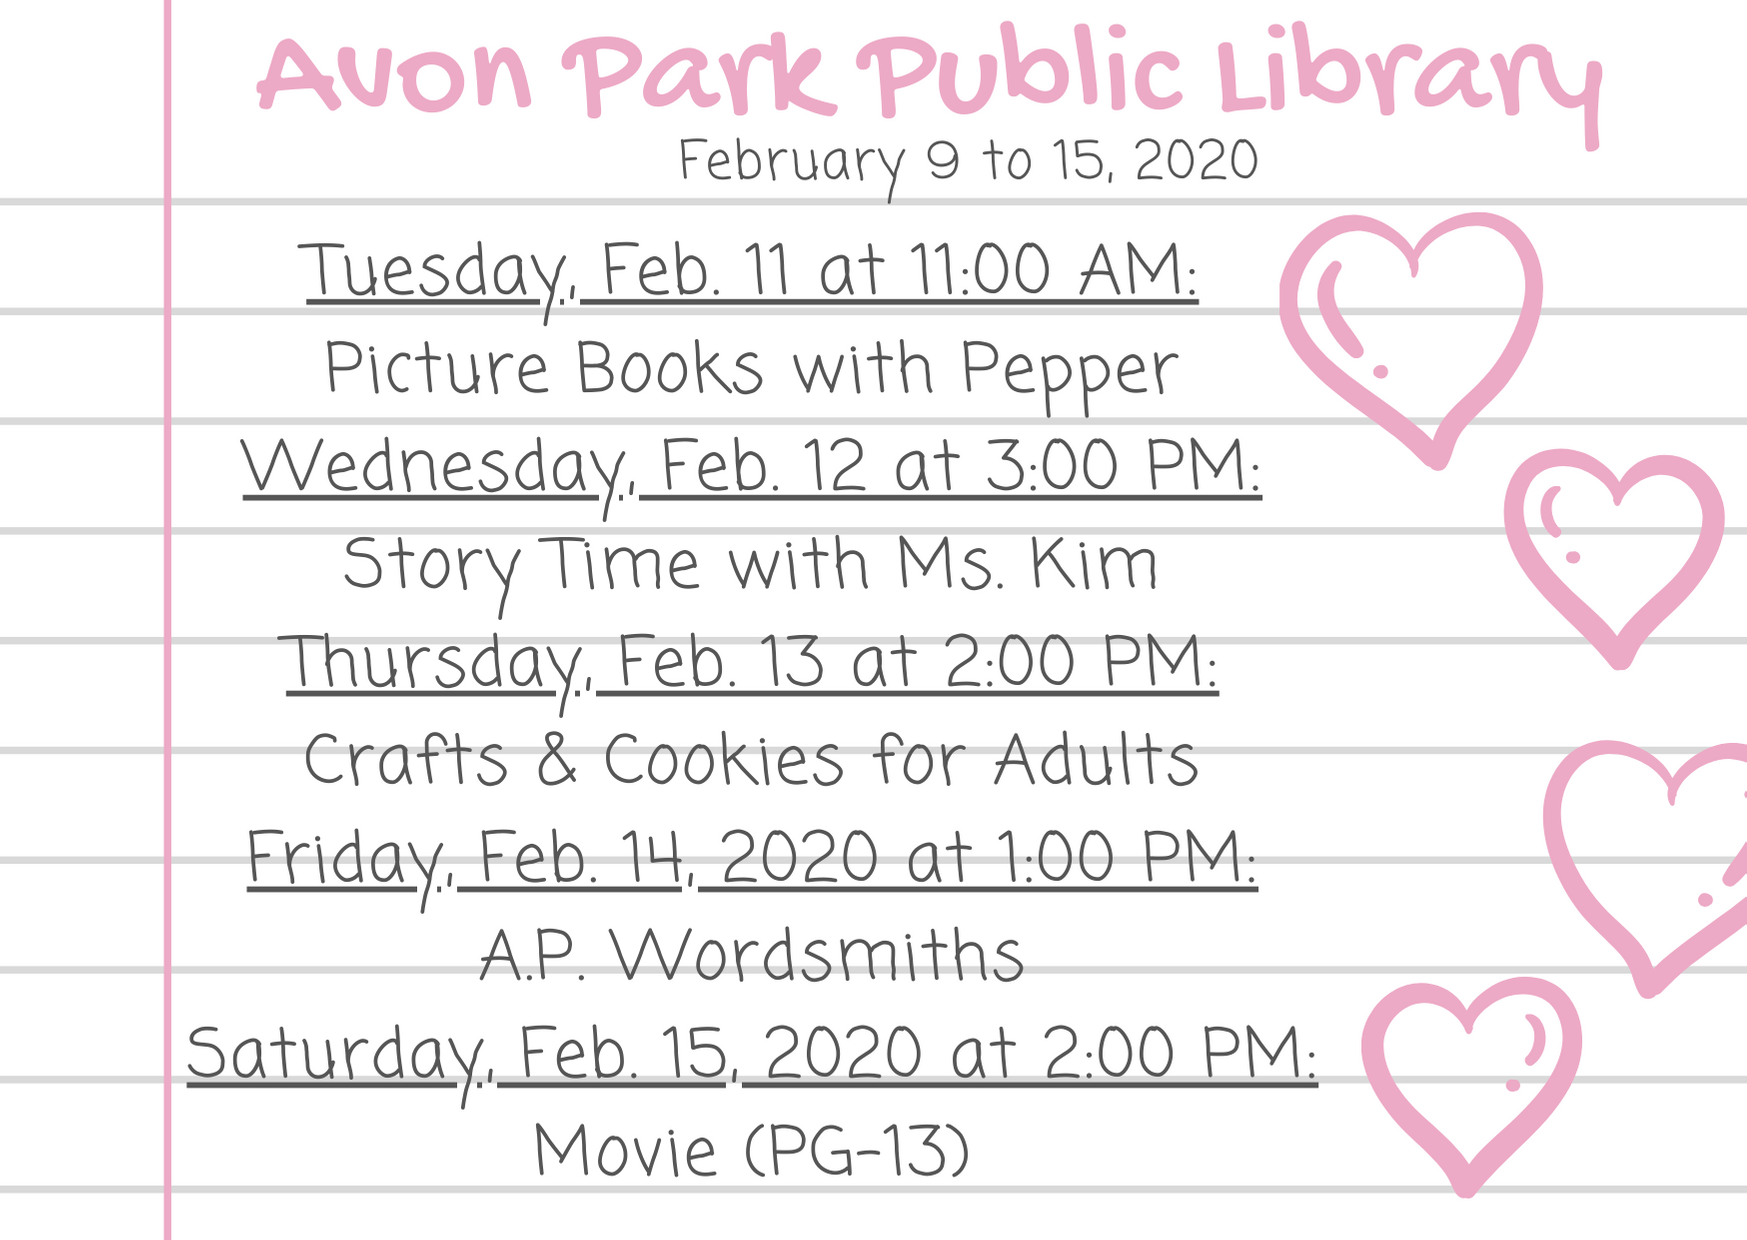 The events for the Avon Park Public Library are as follows: On Tuesday, February 11, 2020 at 11:00 AM, Pepper, the therapy dog, will be joining us for Picture Books with Pepper in the atrium. At 3:00 PM on Wednesday, February 12, 2020, Ms. Kim will host story time in the children's area. On Thursday, February 13, 2020, we will have crafts and cookies for adults happening in the meeting room 2:00 PM to 4:00 PM. On Friday, January 14, 2020 at 1:00 PM, the A.P Wordsmiths will be meeting. On Saturday, February 15, 2020 at 2:00 PM, we will be showing a movie (rated PG-13).